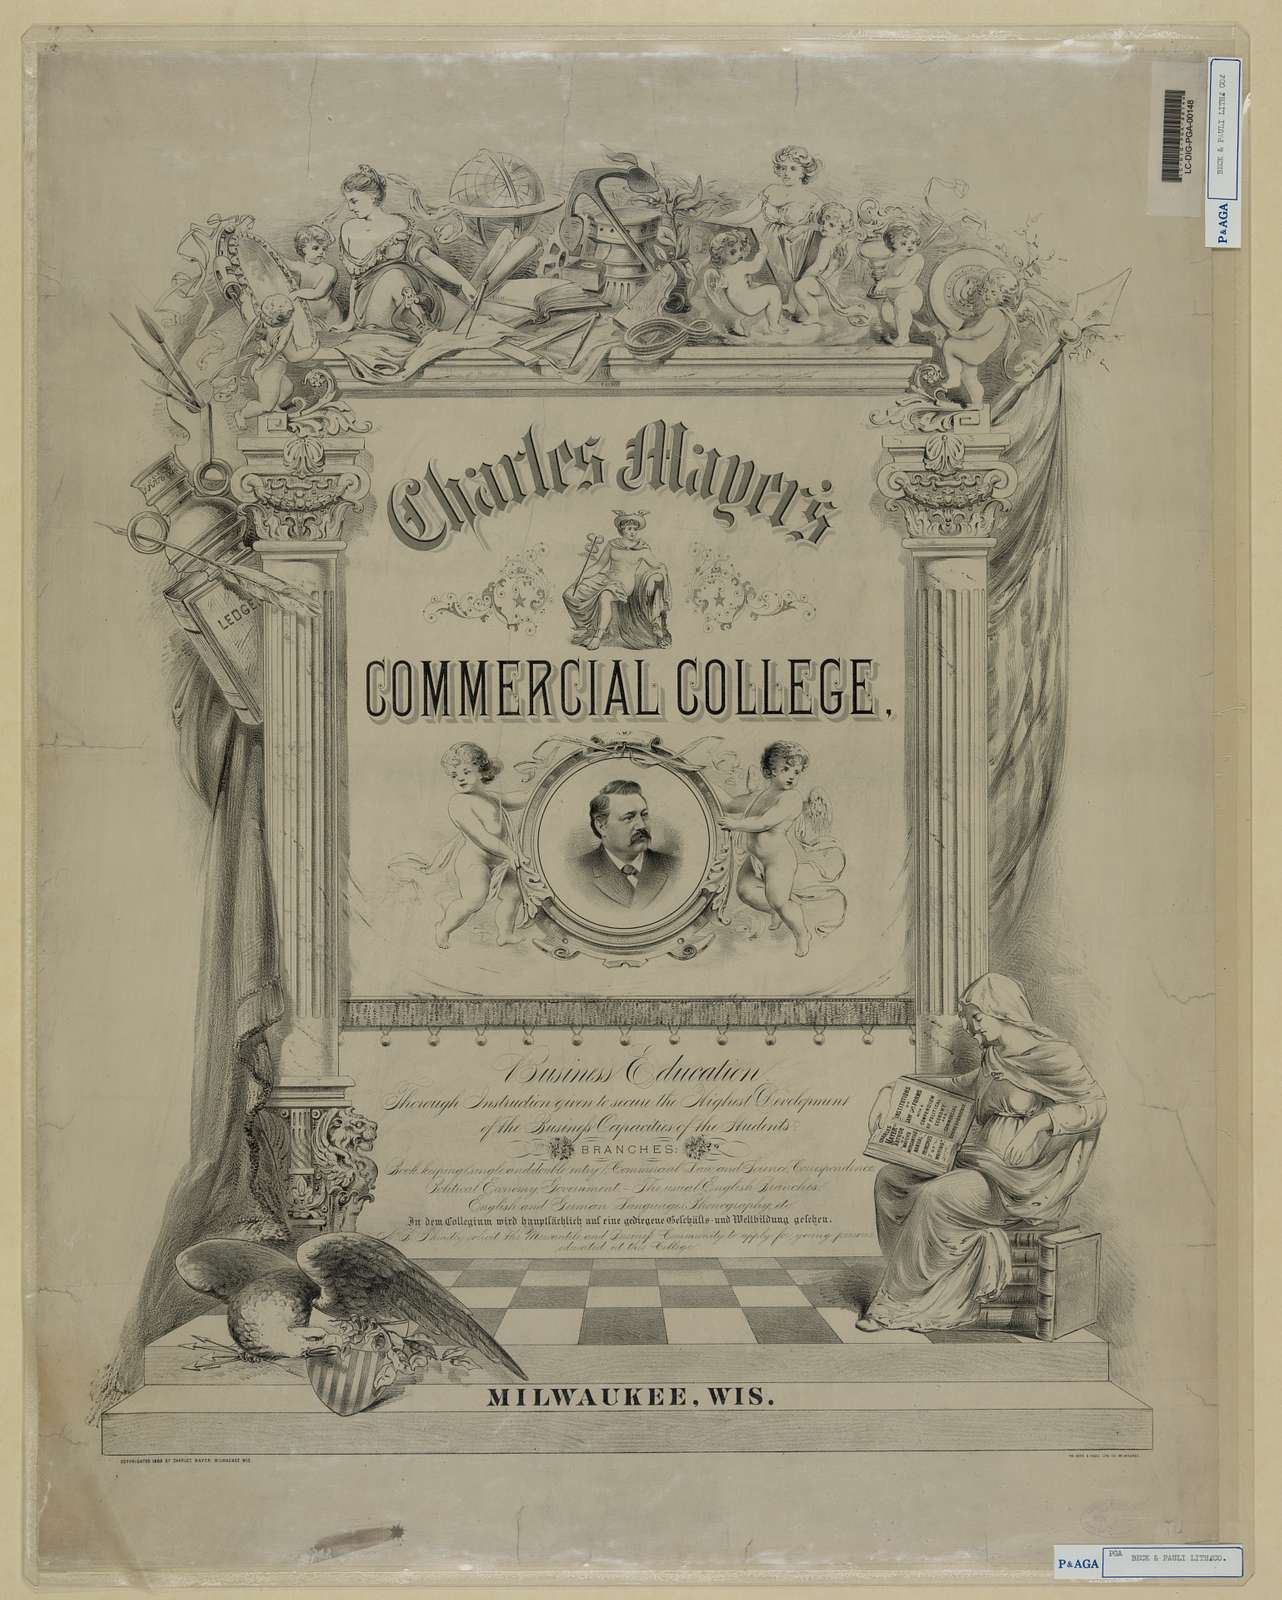 Charles Mayer's commercial college / the Beck & Pauli Lith. Co. Malwaukee.